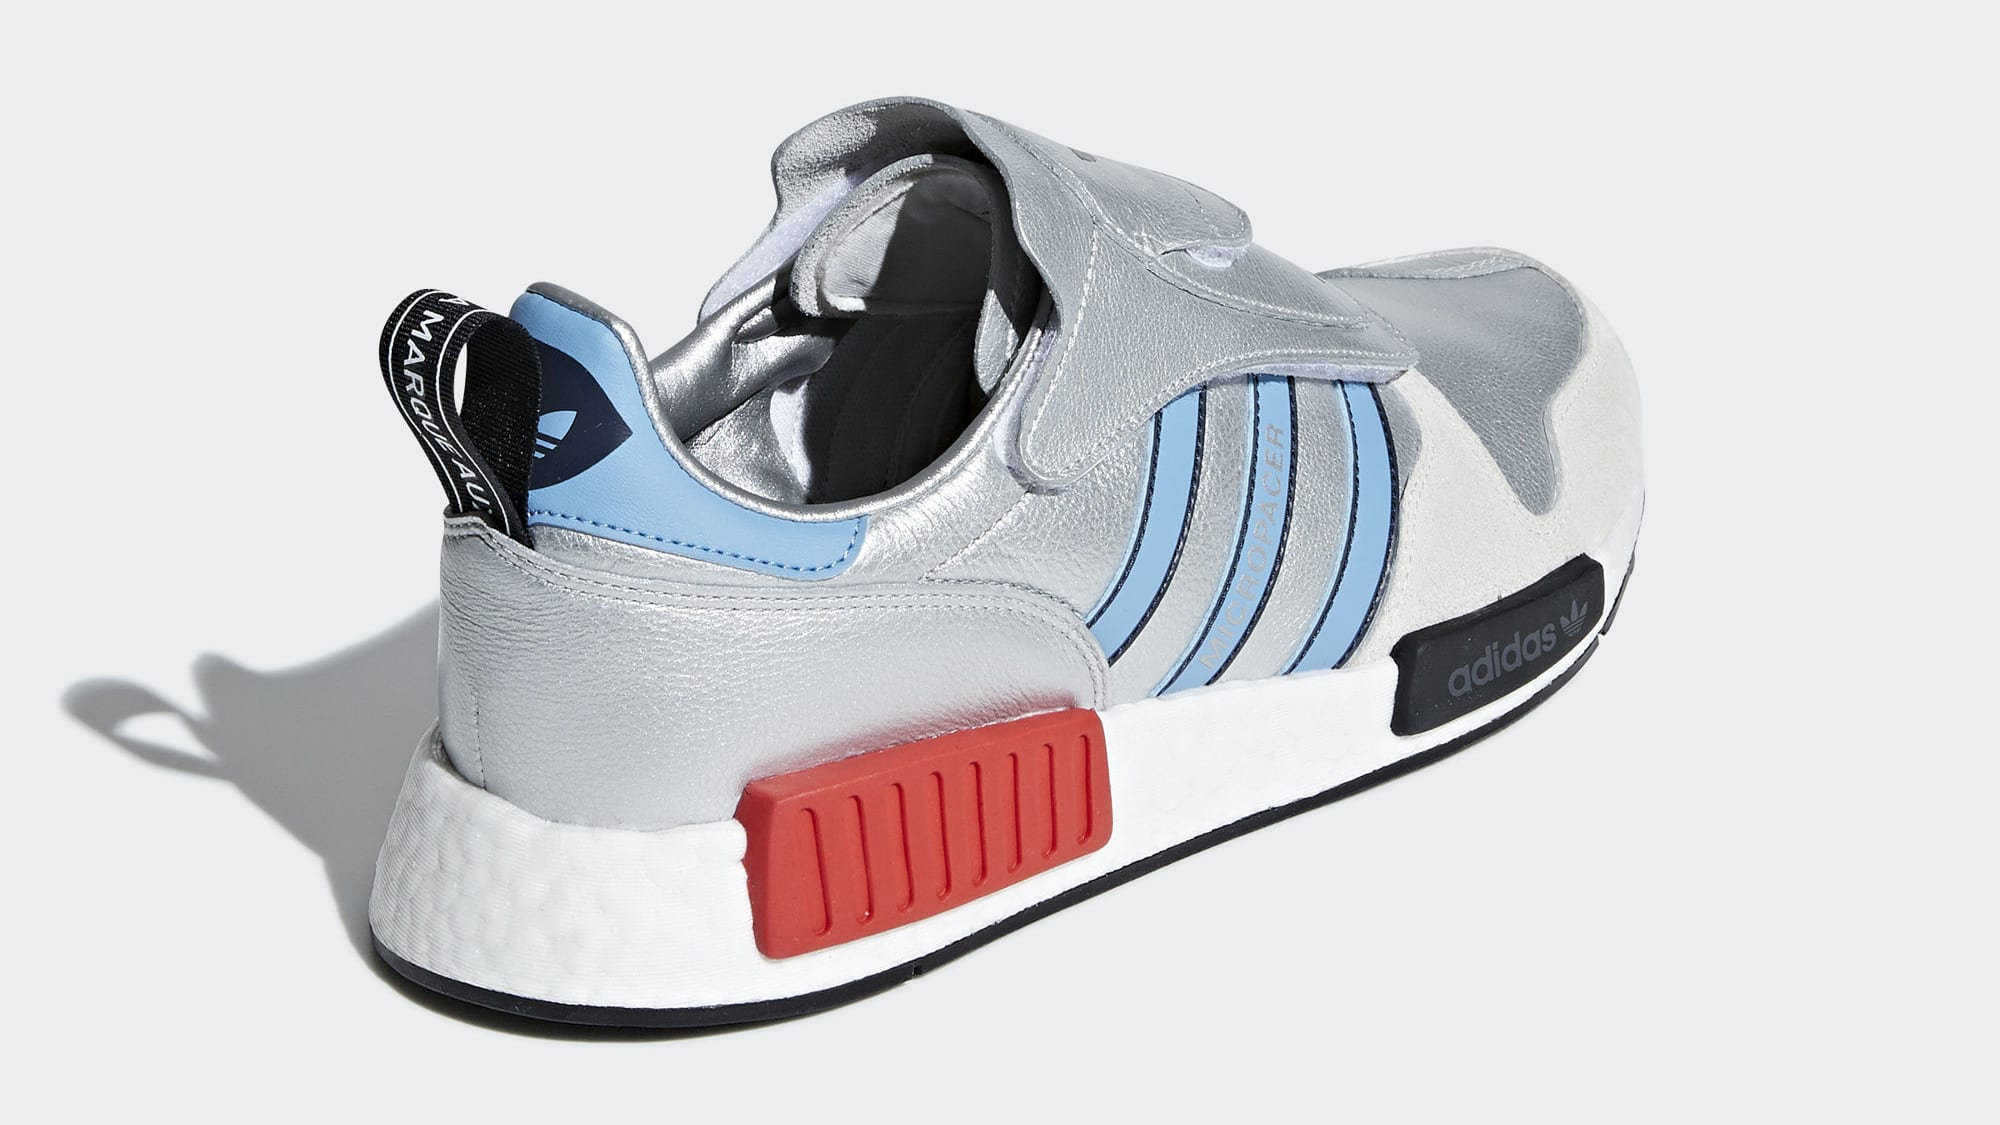 Adidas Micropacer NMD R1 Silver Release Date G26778 Back